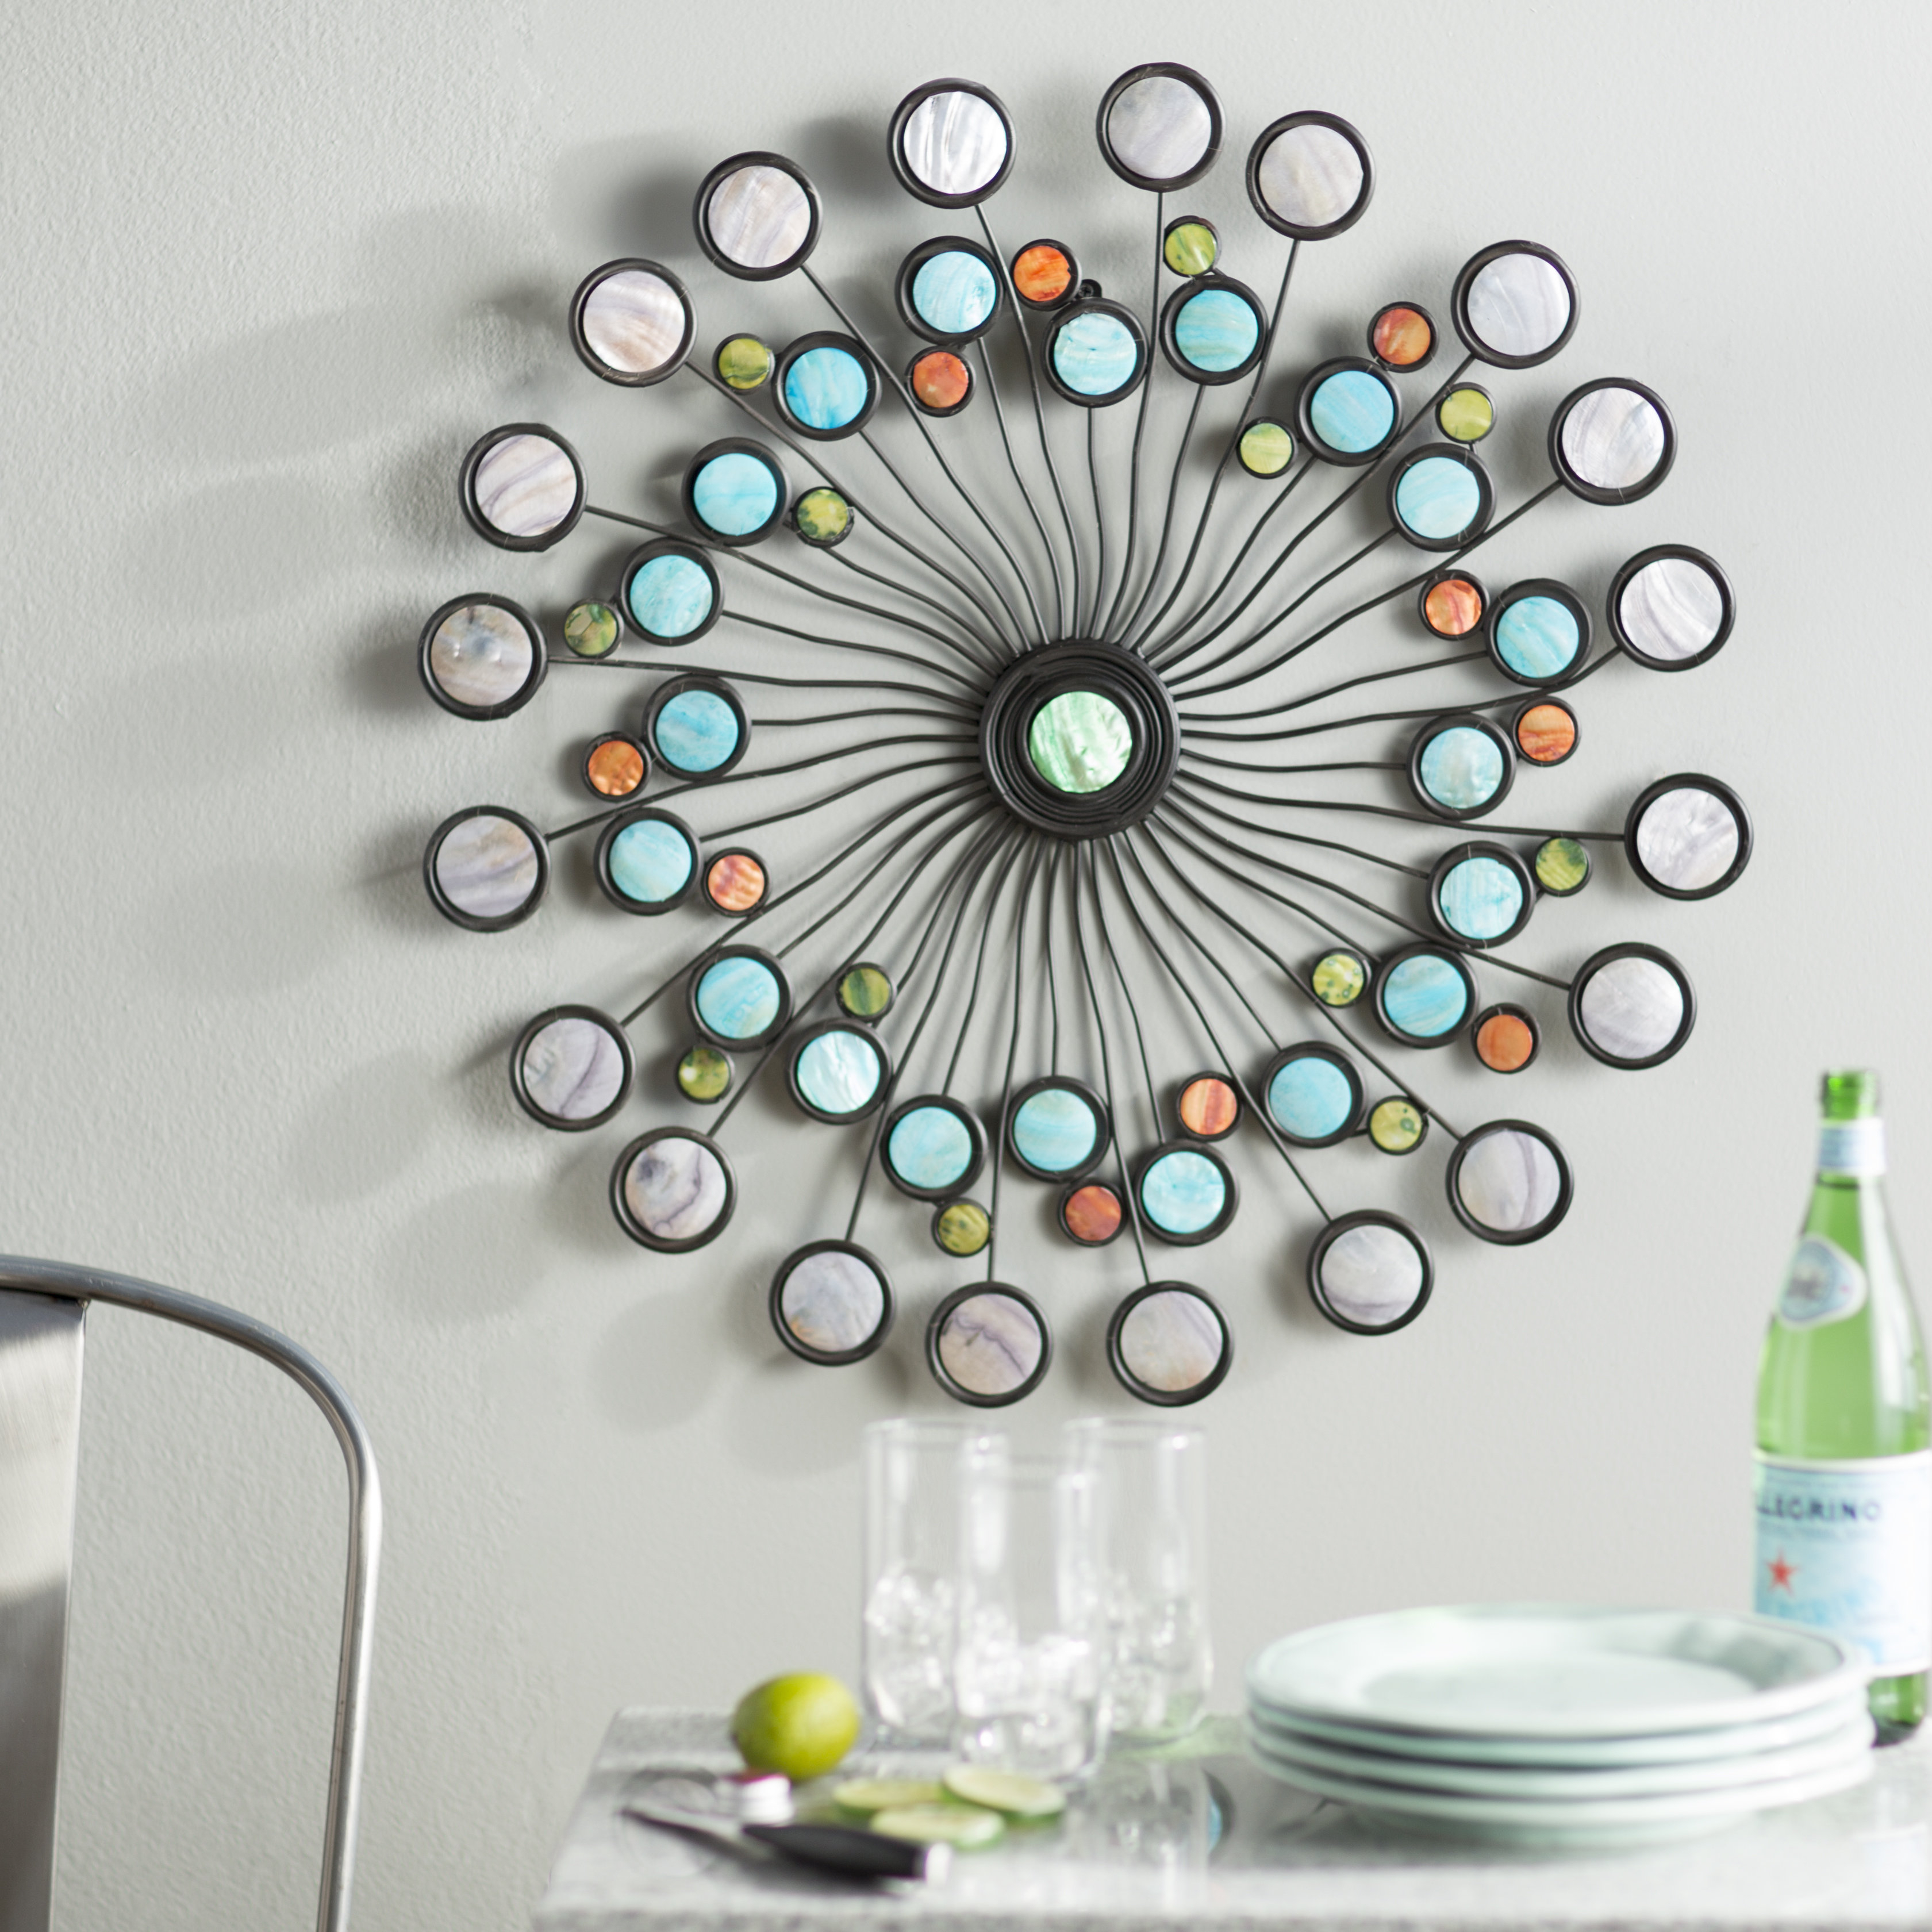 Wayfair Intended For Well Liked Raheem Flowers Metal Wall Decor (Gallery 12 of 20)